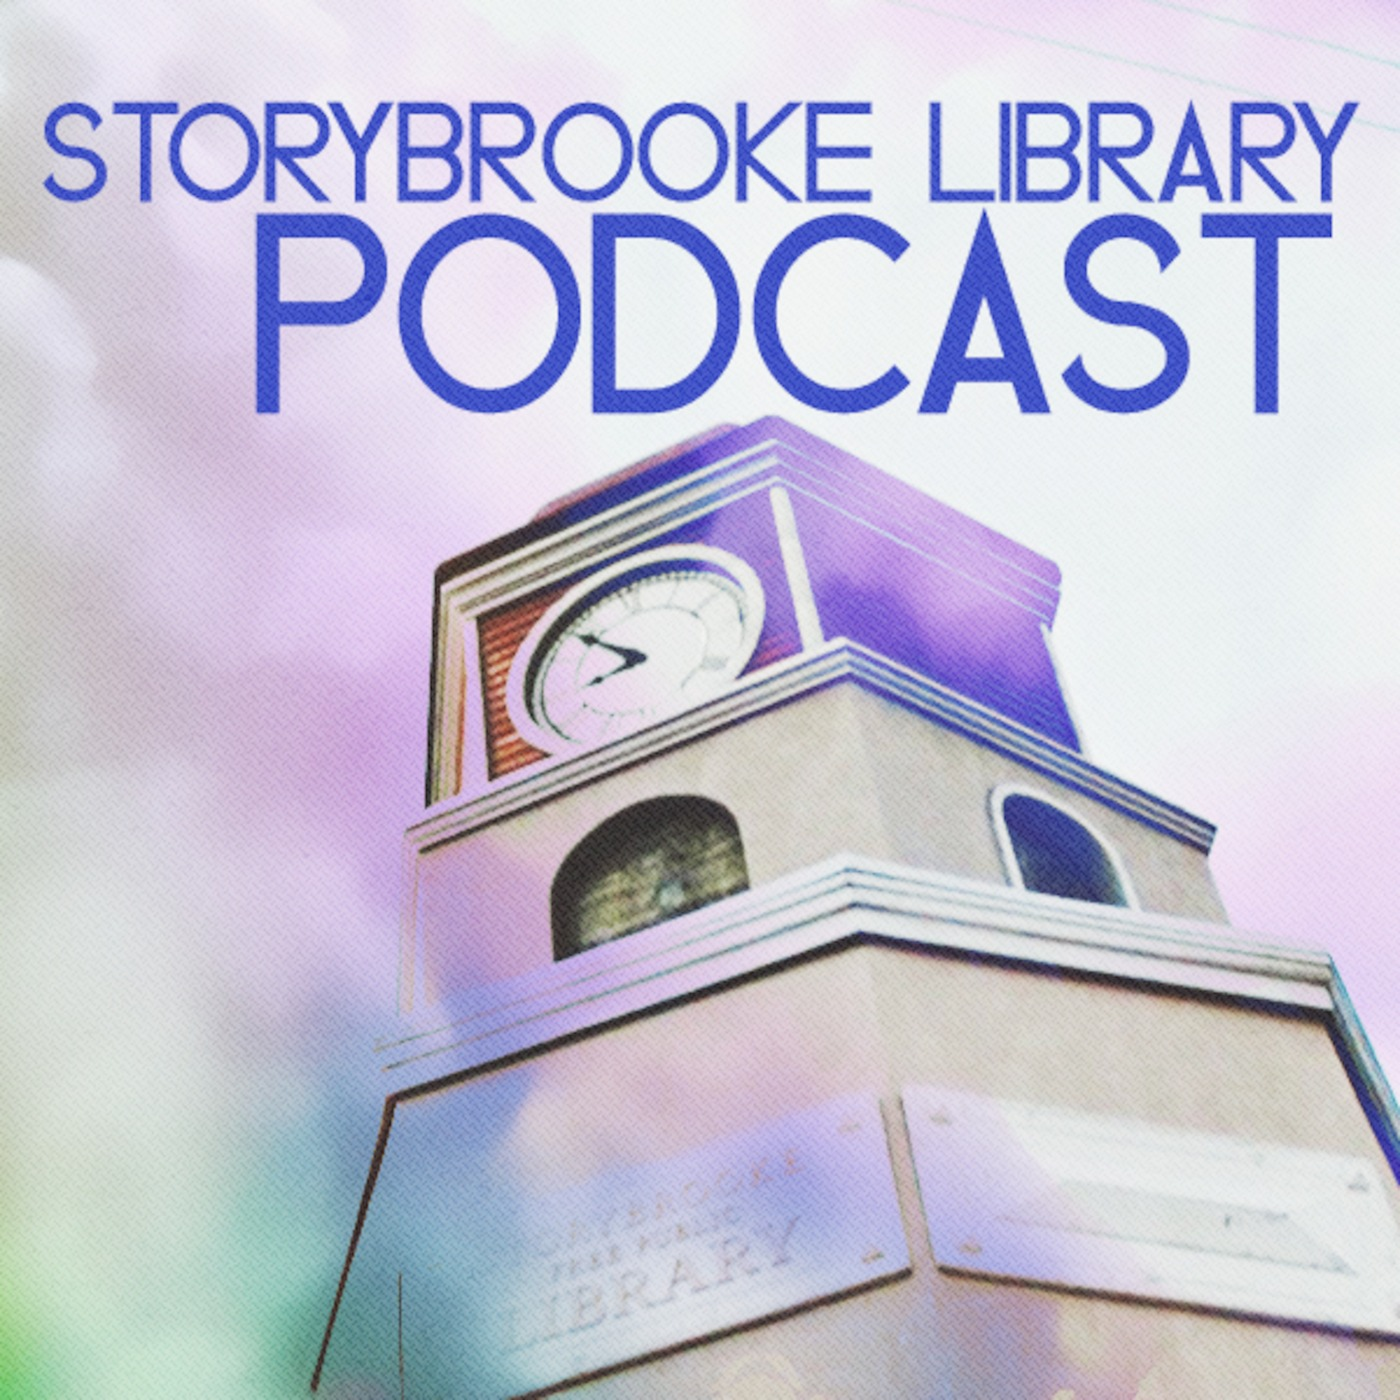 Storybrooke Library's Podcast